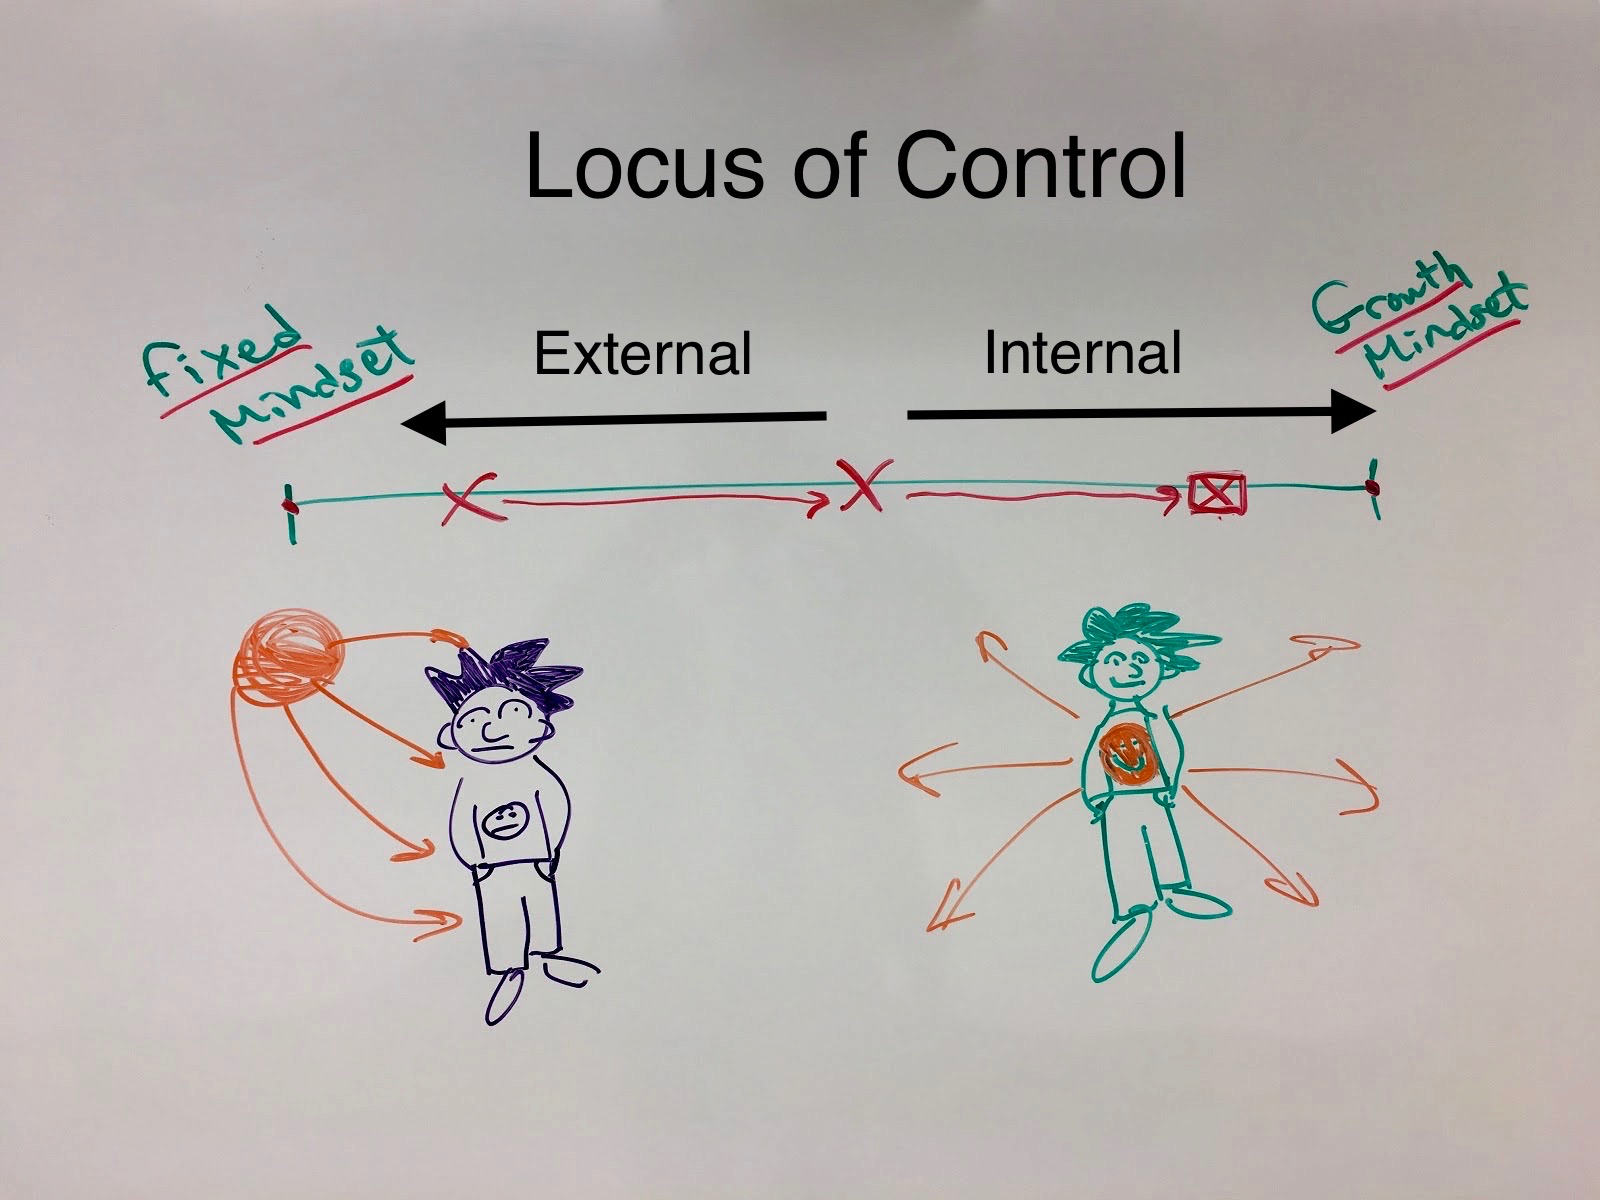 Grading systems tend to position the locus of control externally, with the teacher. Shifting to an internal locus of control can increase motivation.